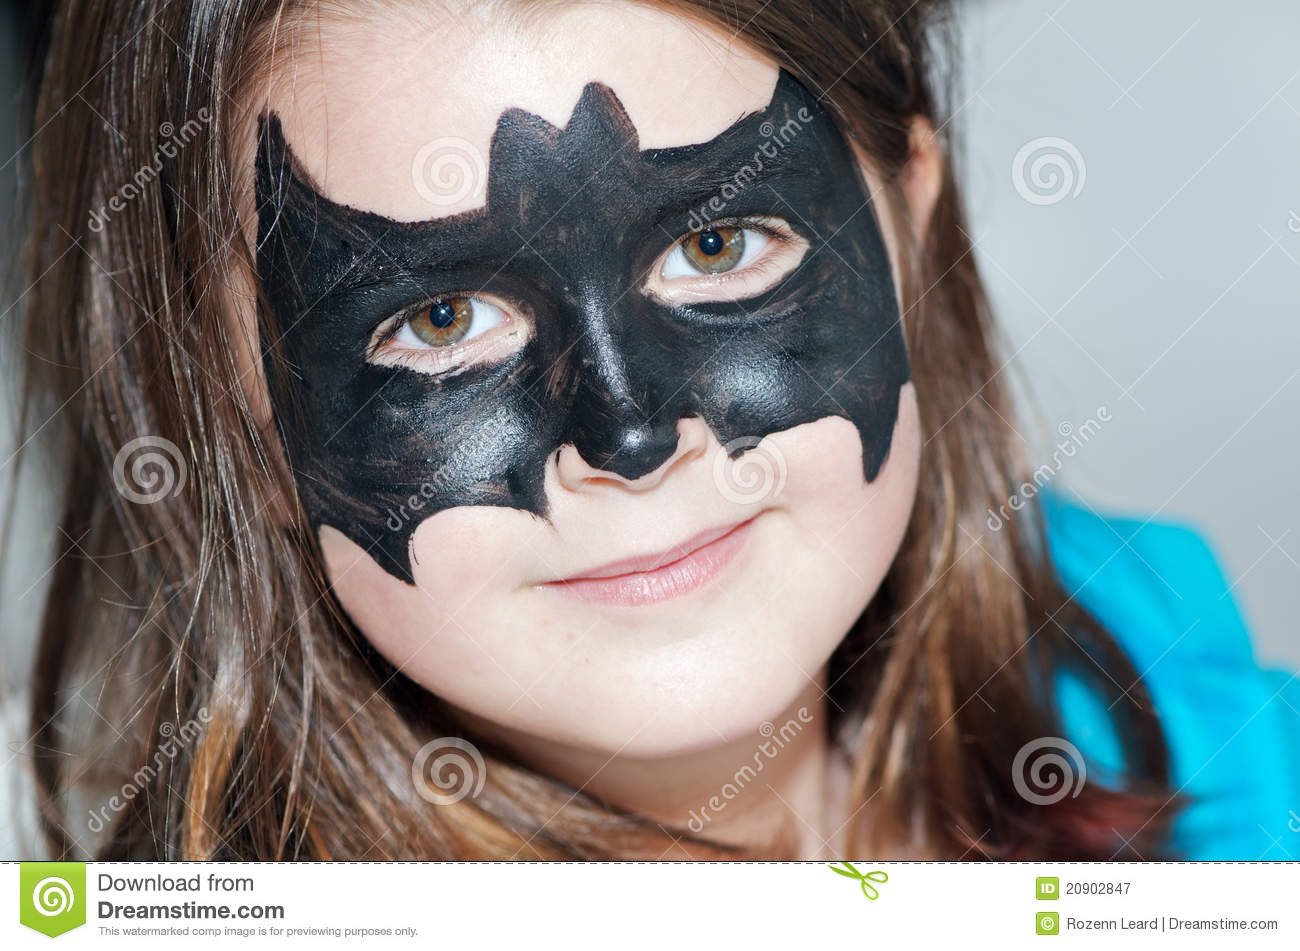 Child With Bat Face Painting Stock Image Image Of Halloween